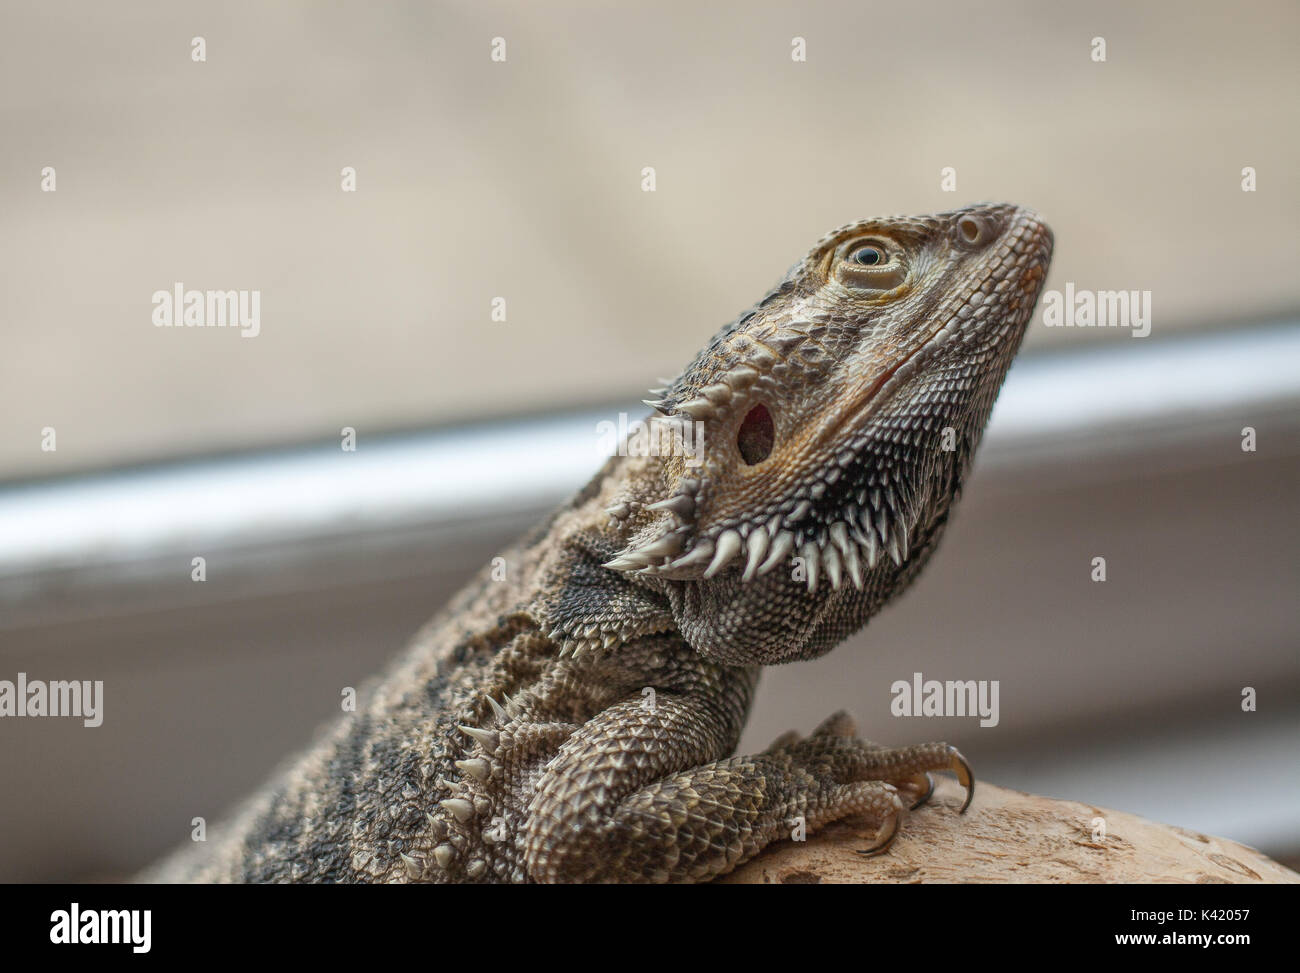 Bearded Dragon - Intrigued - Stock Image